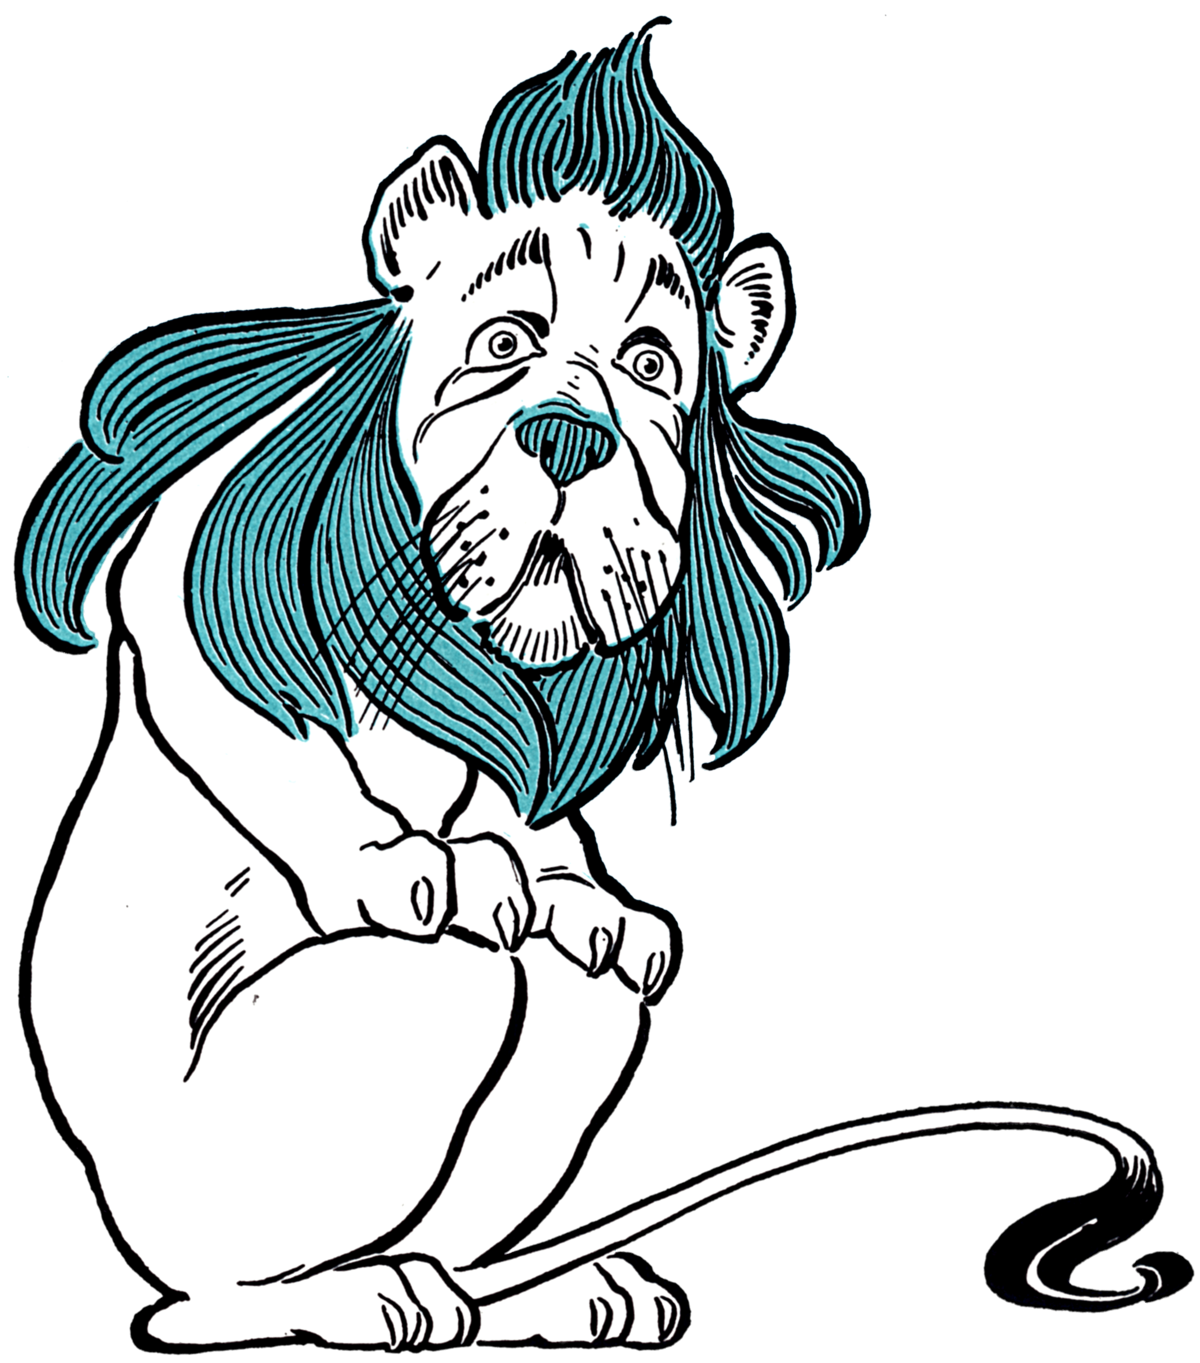 Straw house clipart black and white svg freeuse Cowardly Lion - Wikipedia svg freeuse